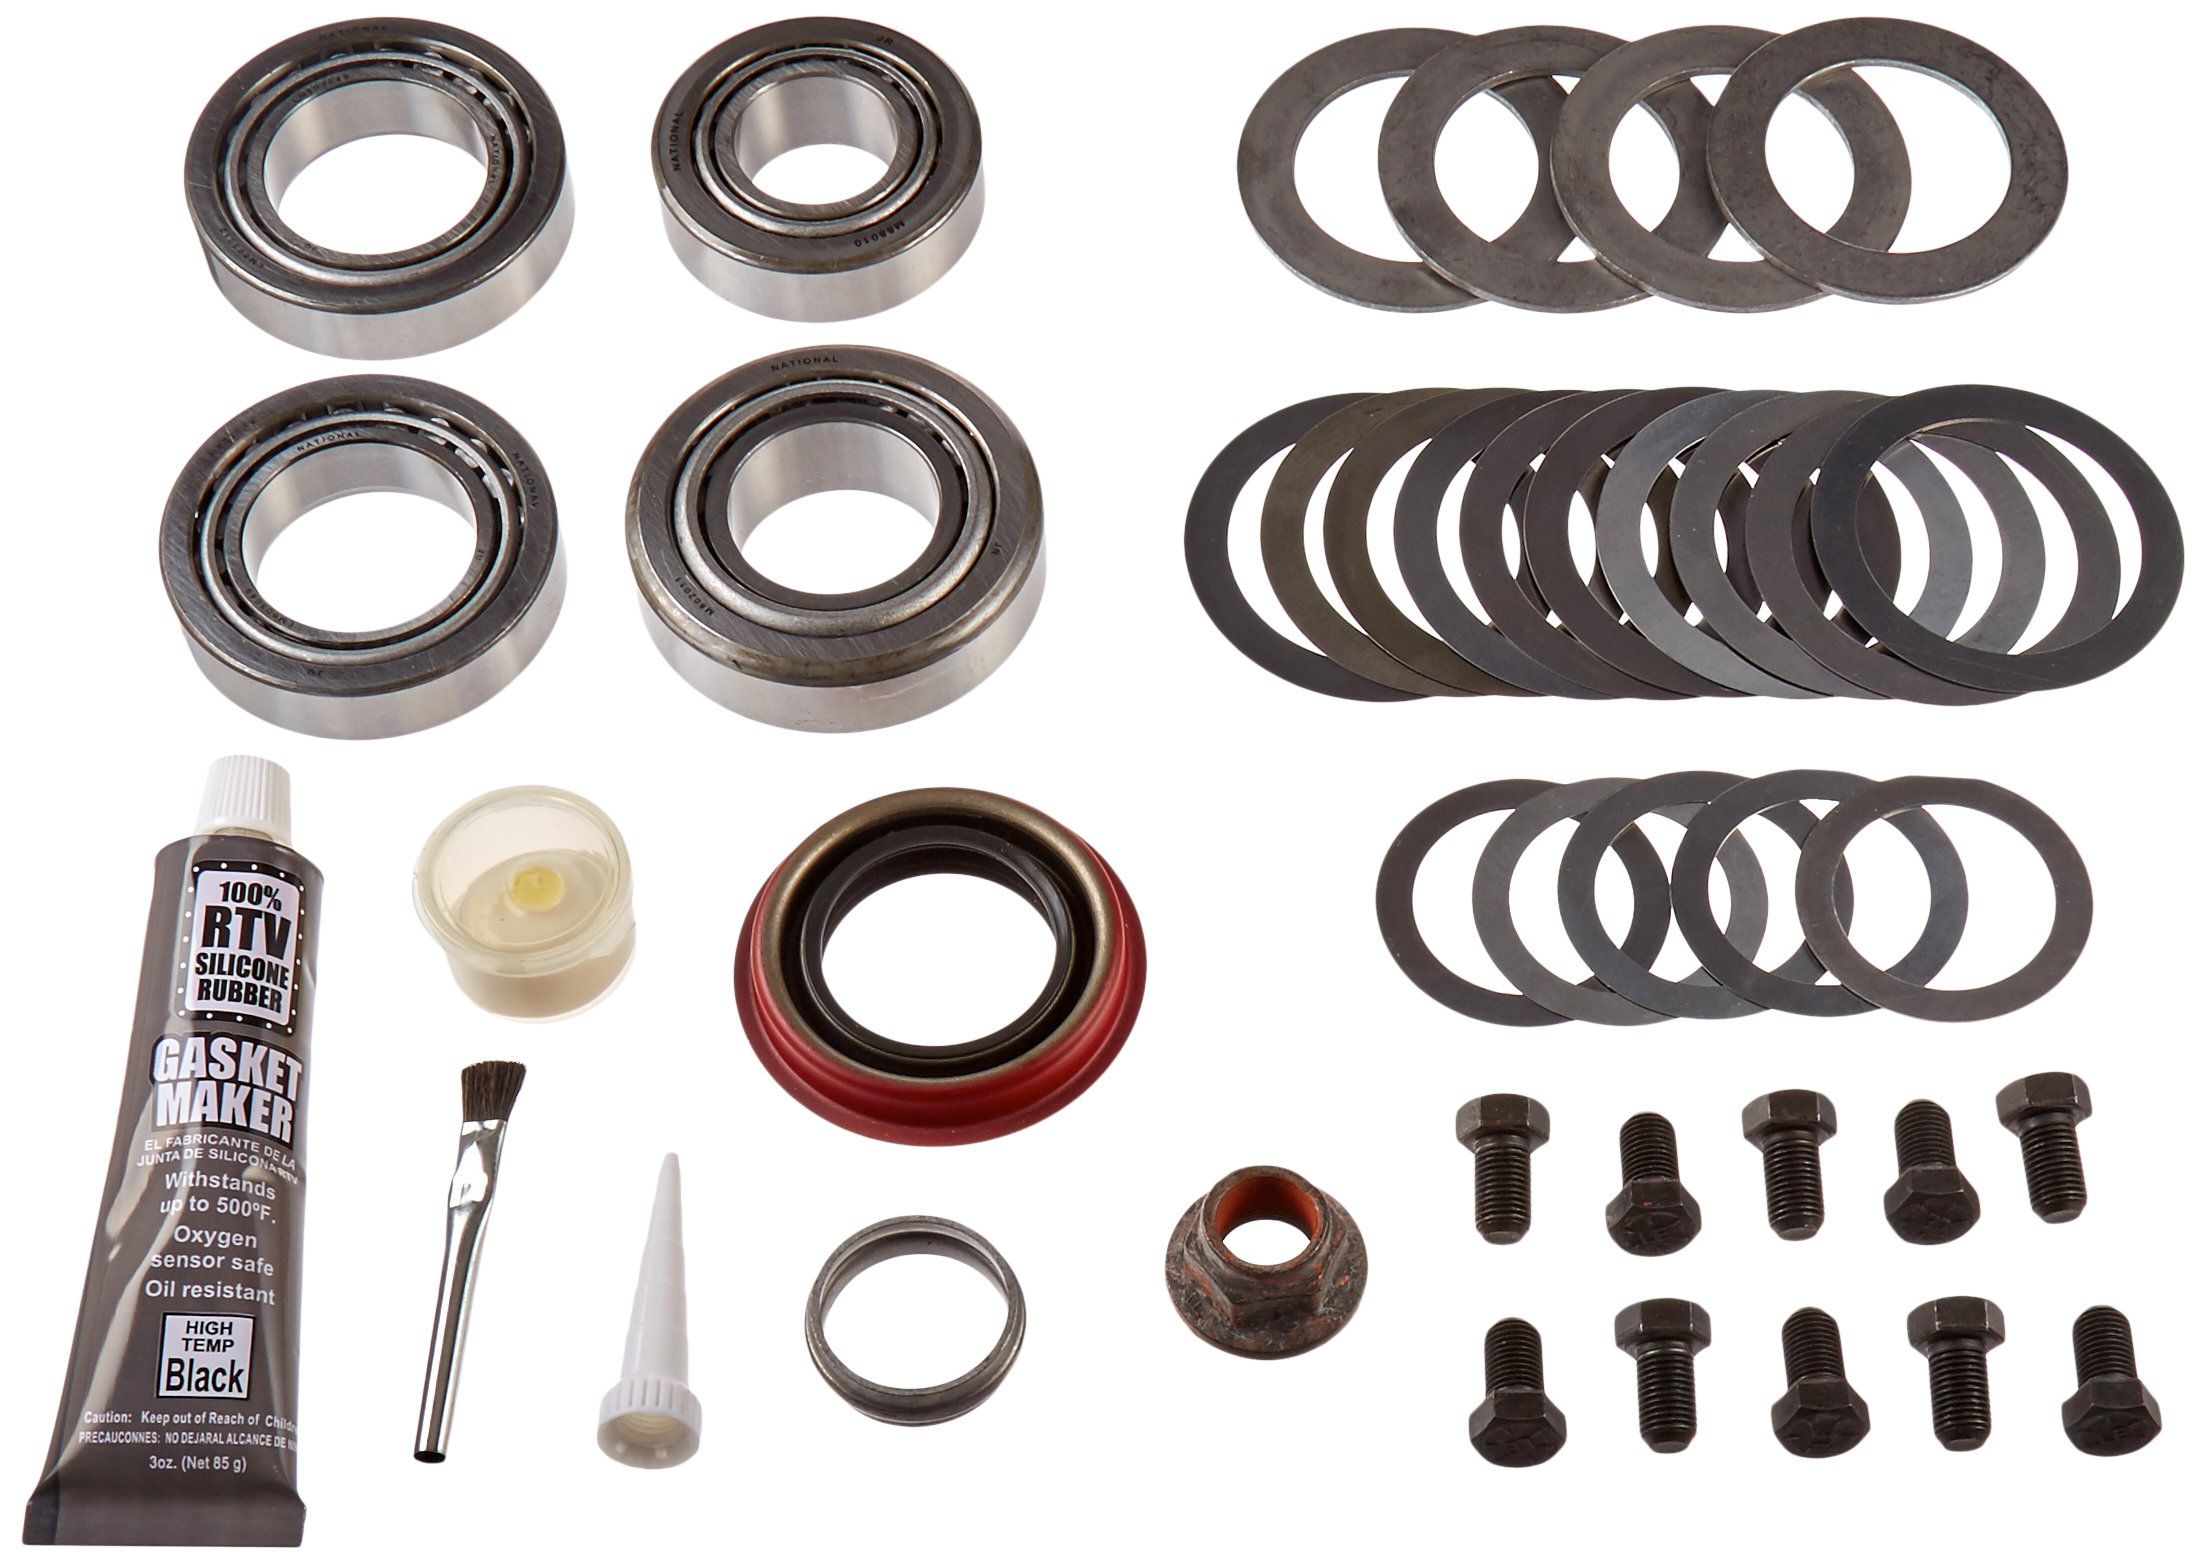 National RA311MK Axle Oil Seal/Bearing Kit